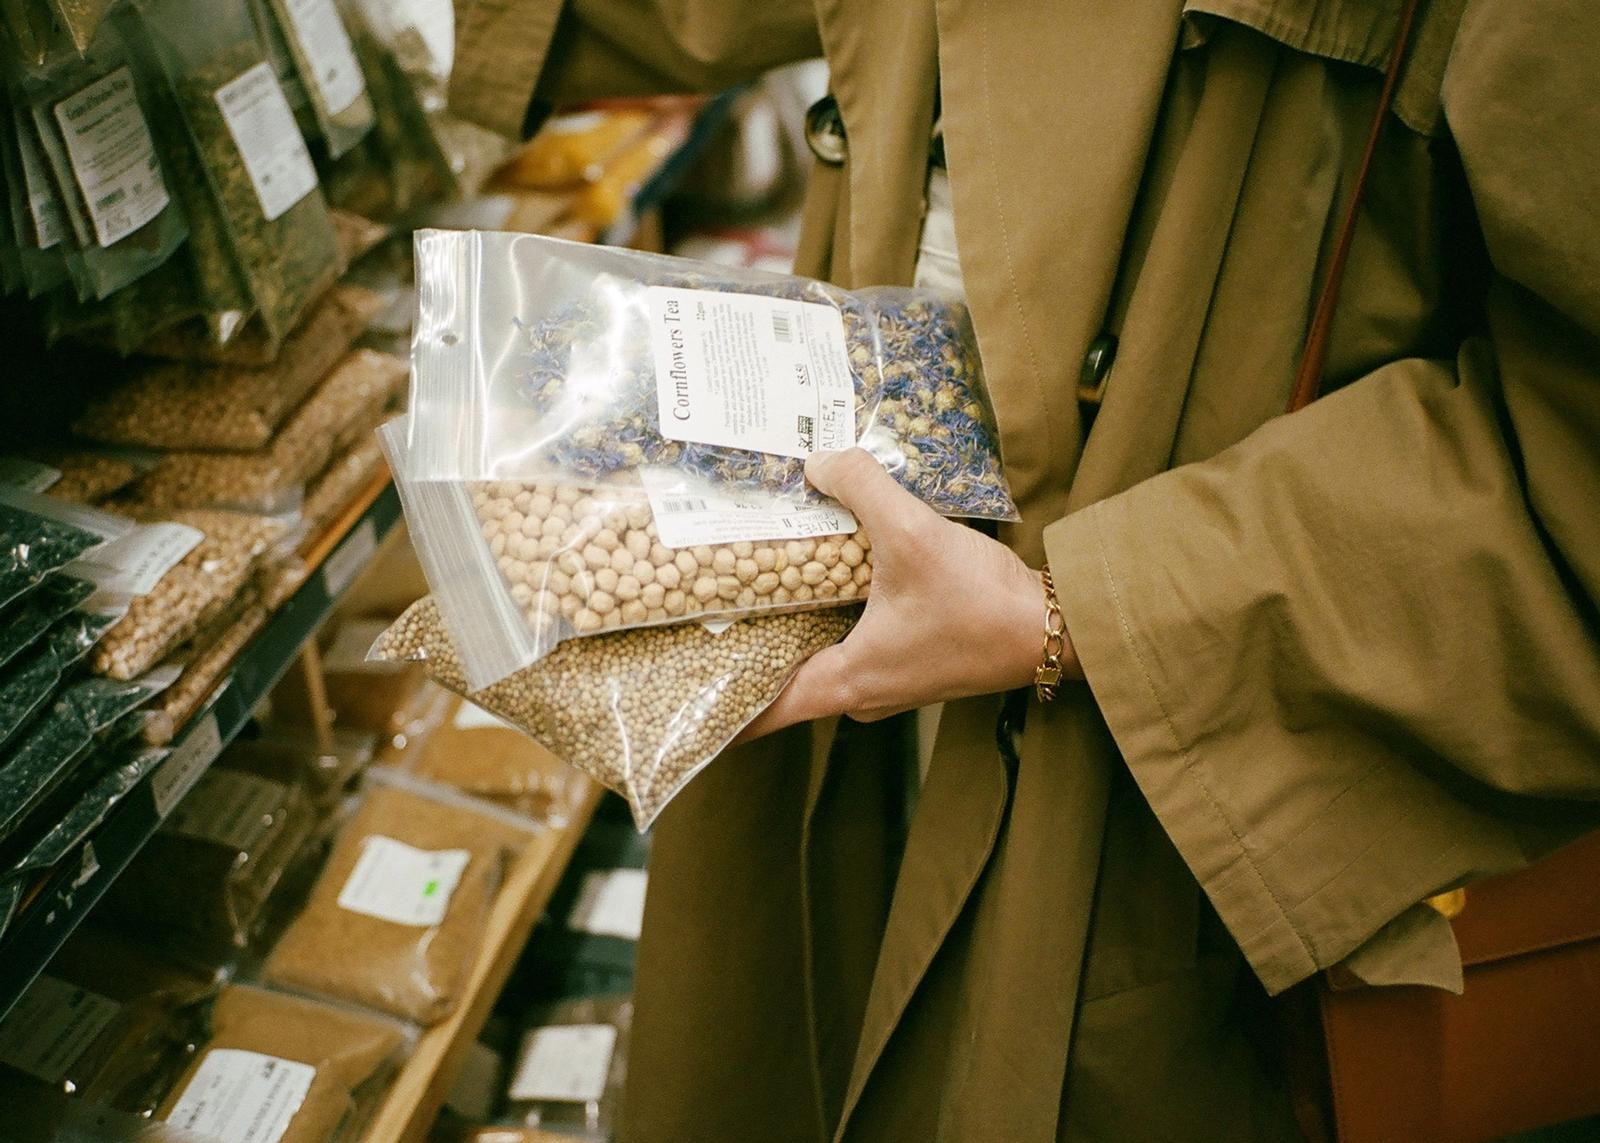 hand holding bags of dried beans and spices